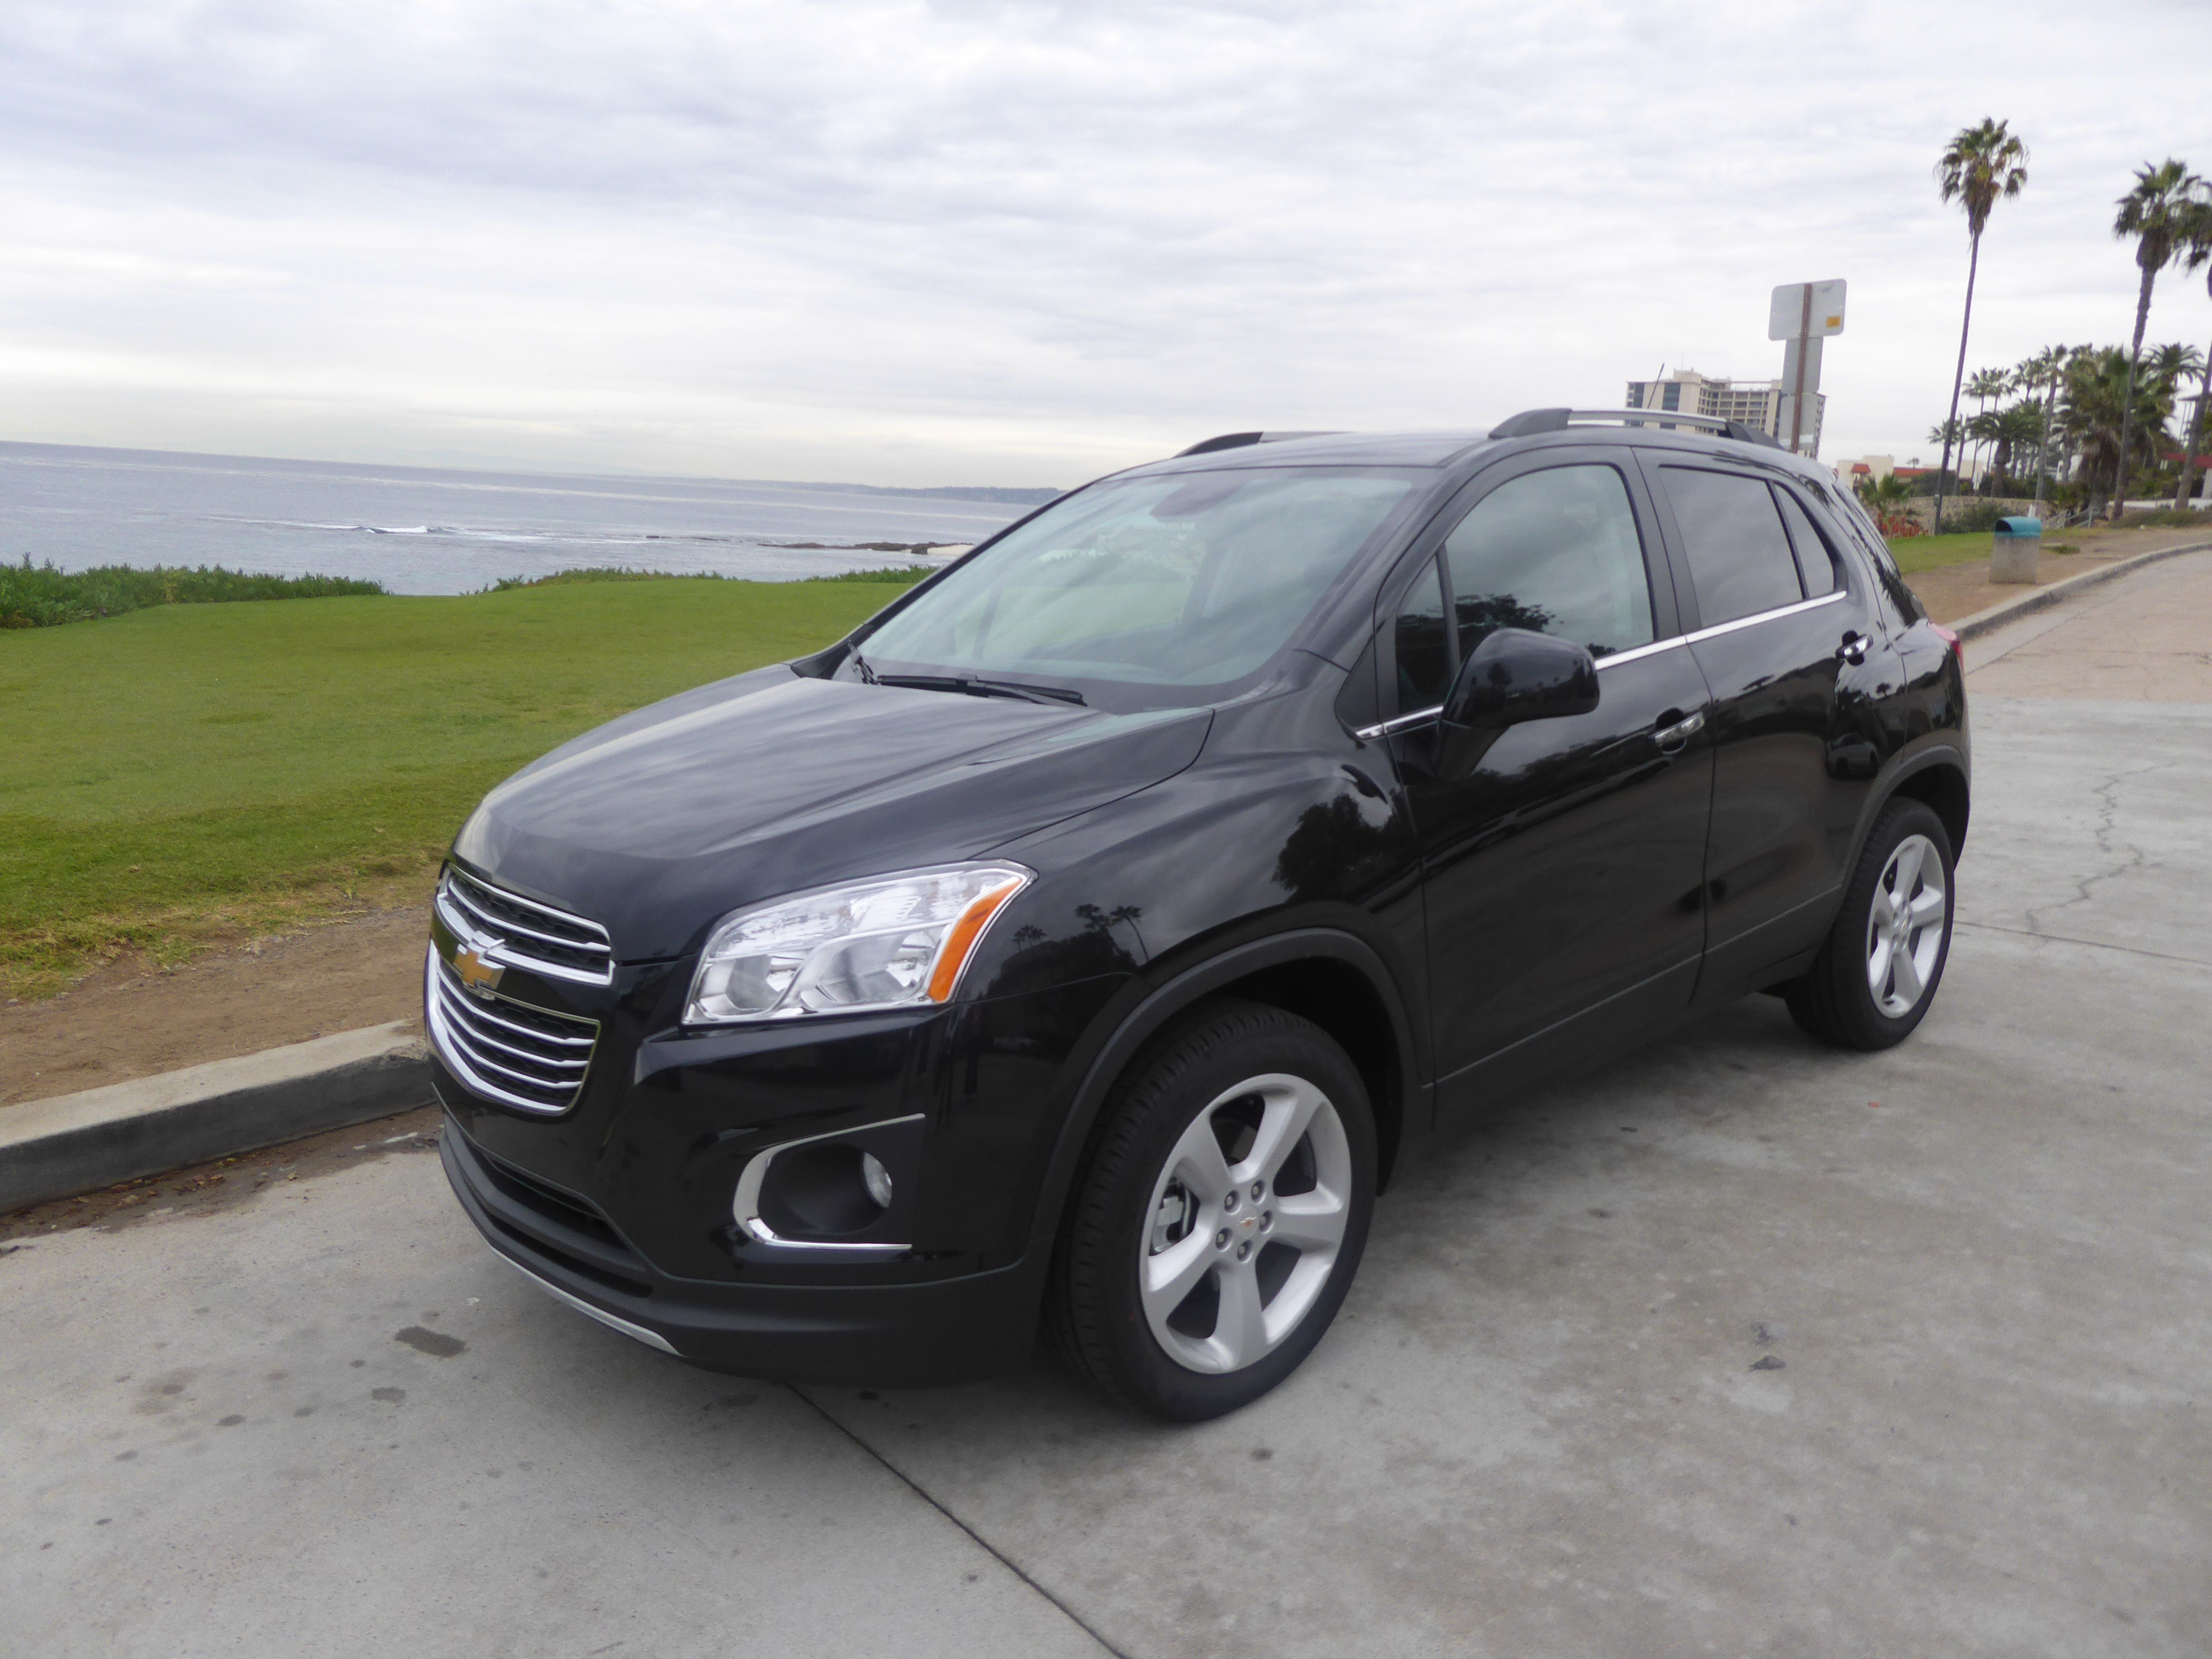 trend equinox angular suv reviews and chevrolet cars rating motor front